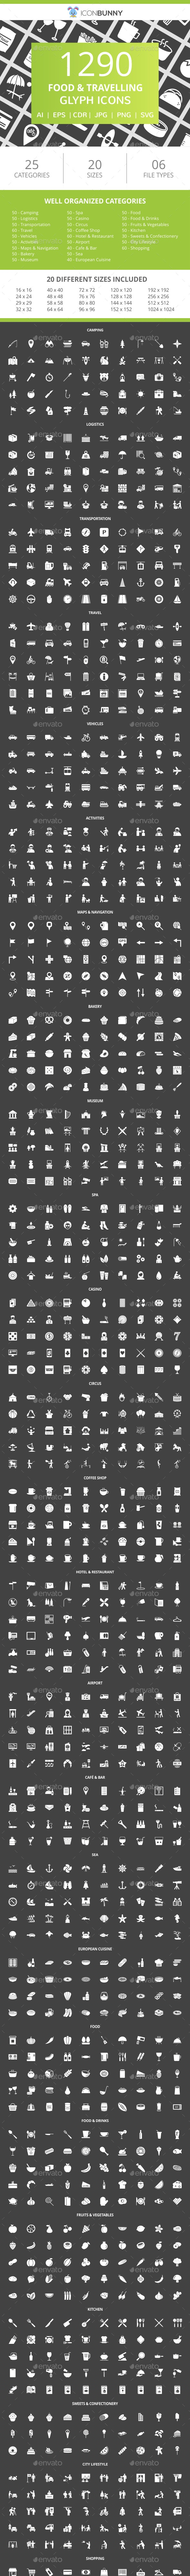 1240 Food & Travelling Glyph Inverted Icons - Icons